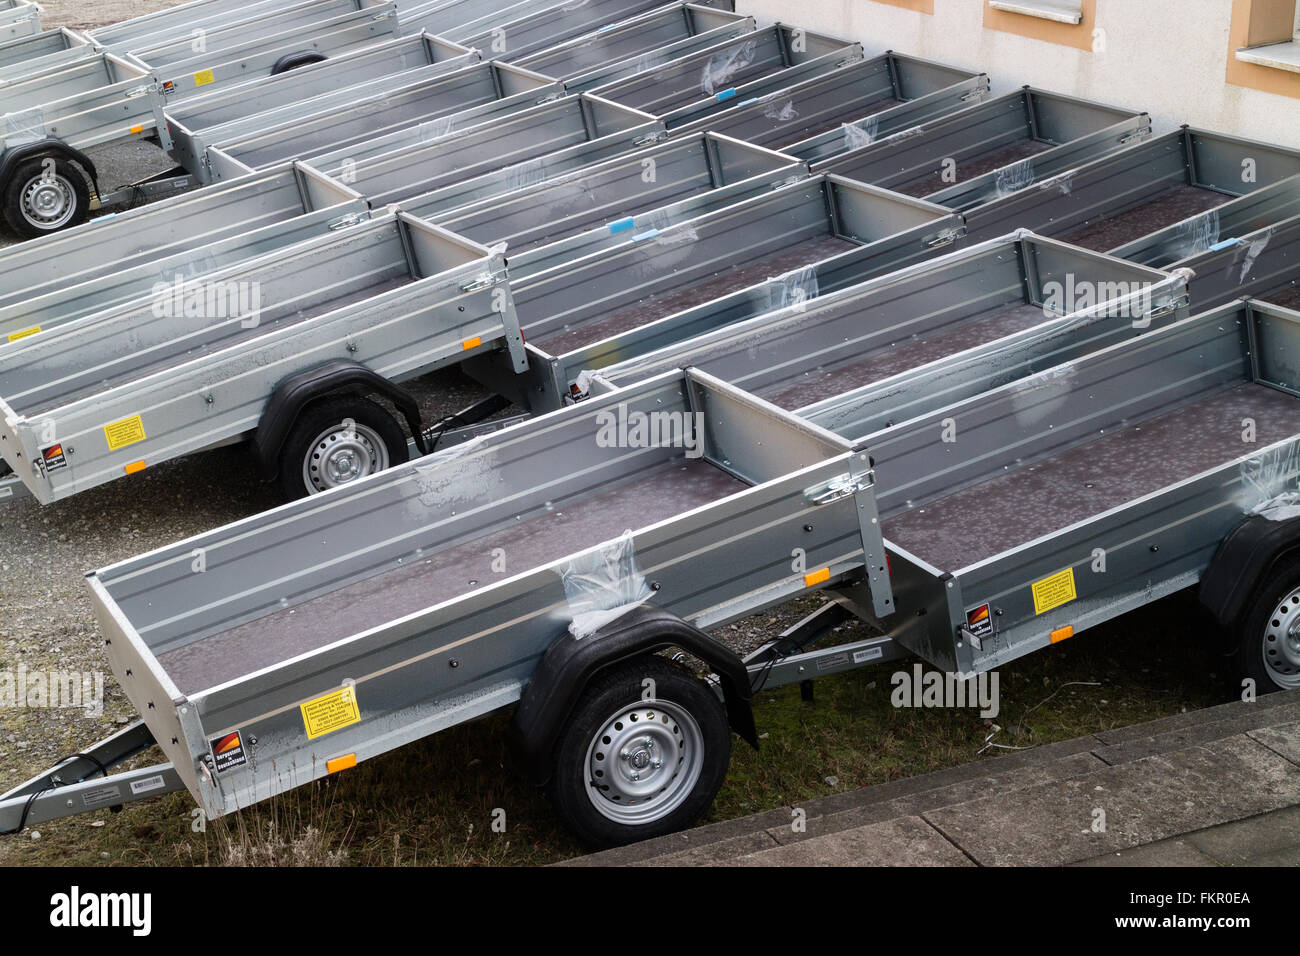 New Car Trailers Sale Stock Photos & New Car Trailers Sale Stock ...